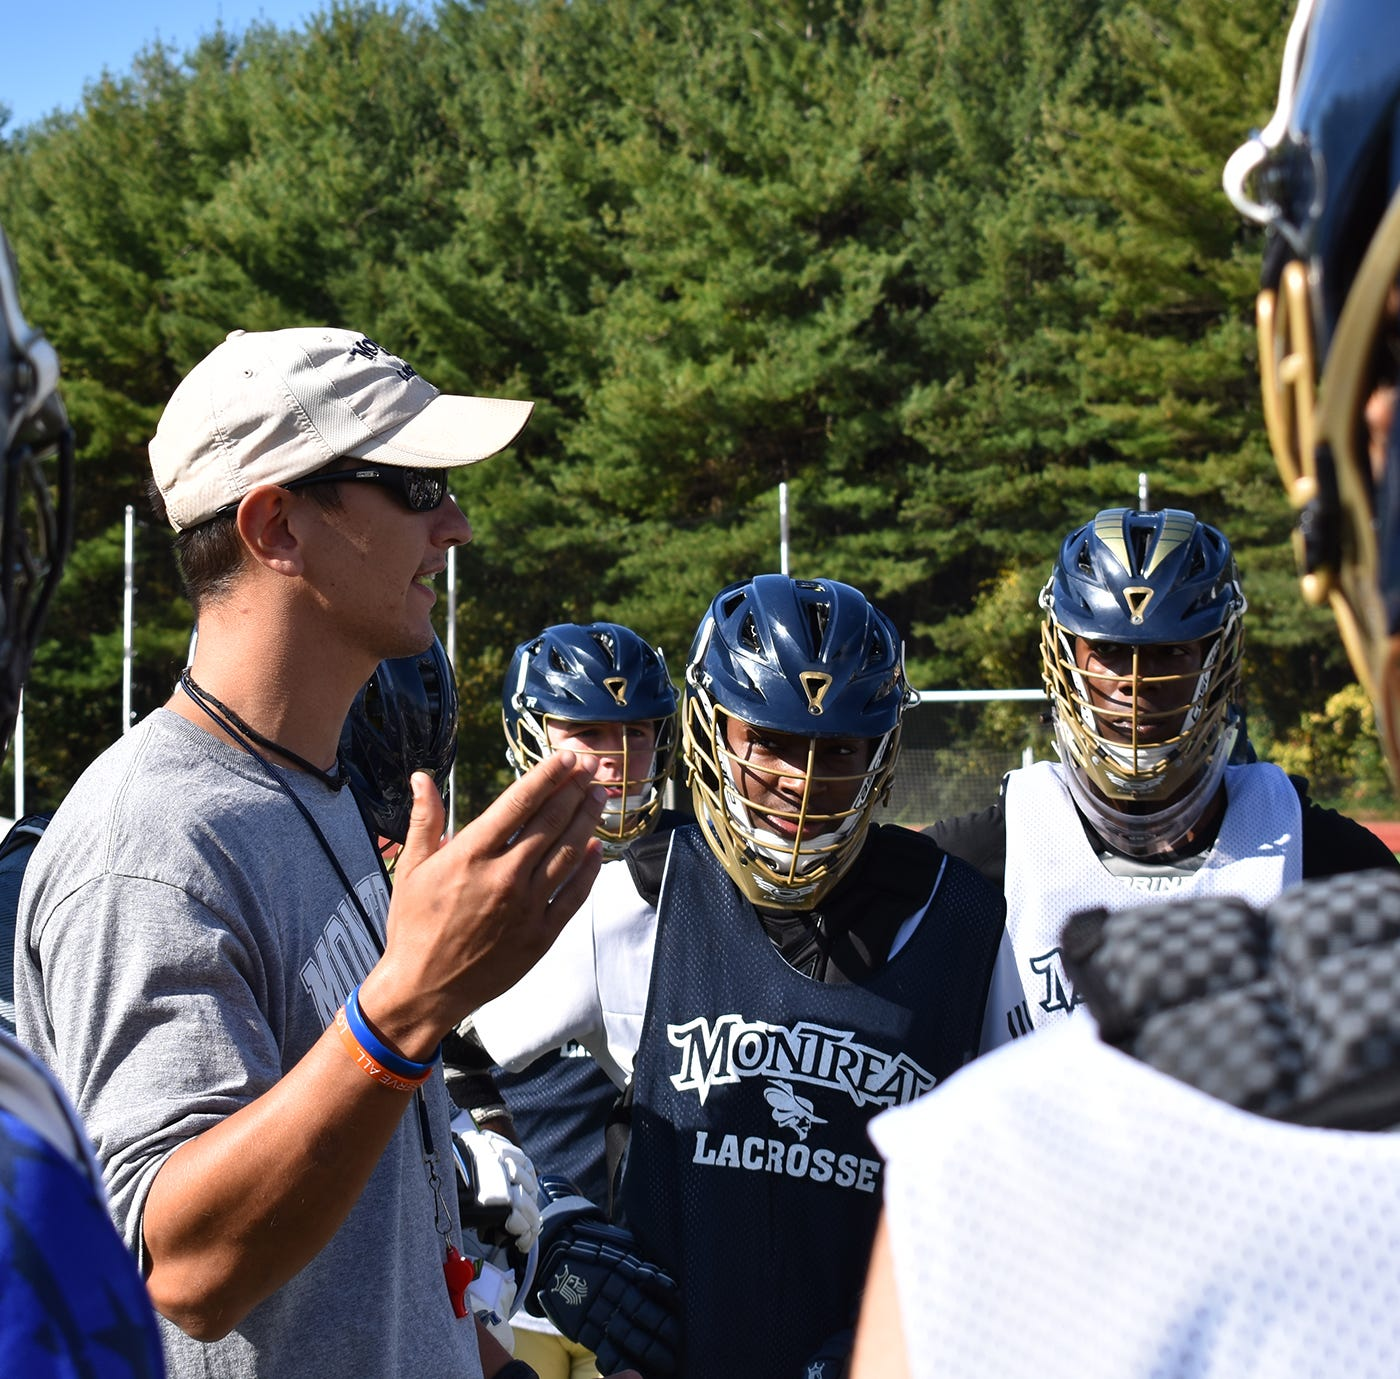 Catching up with Montreat lacrosse coach Ethan Kamholtz